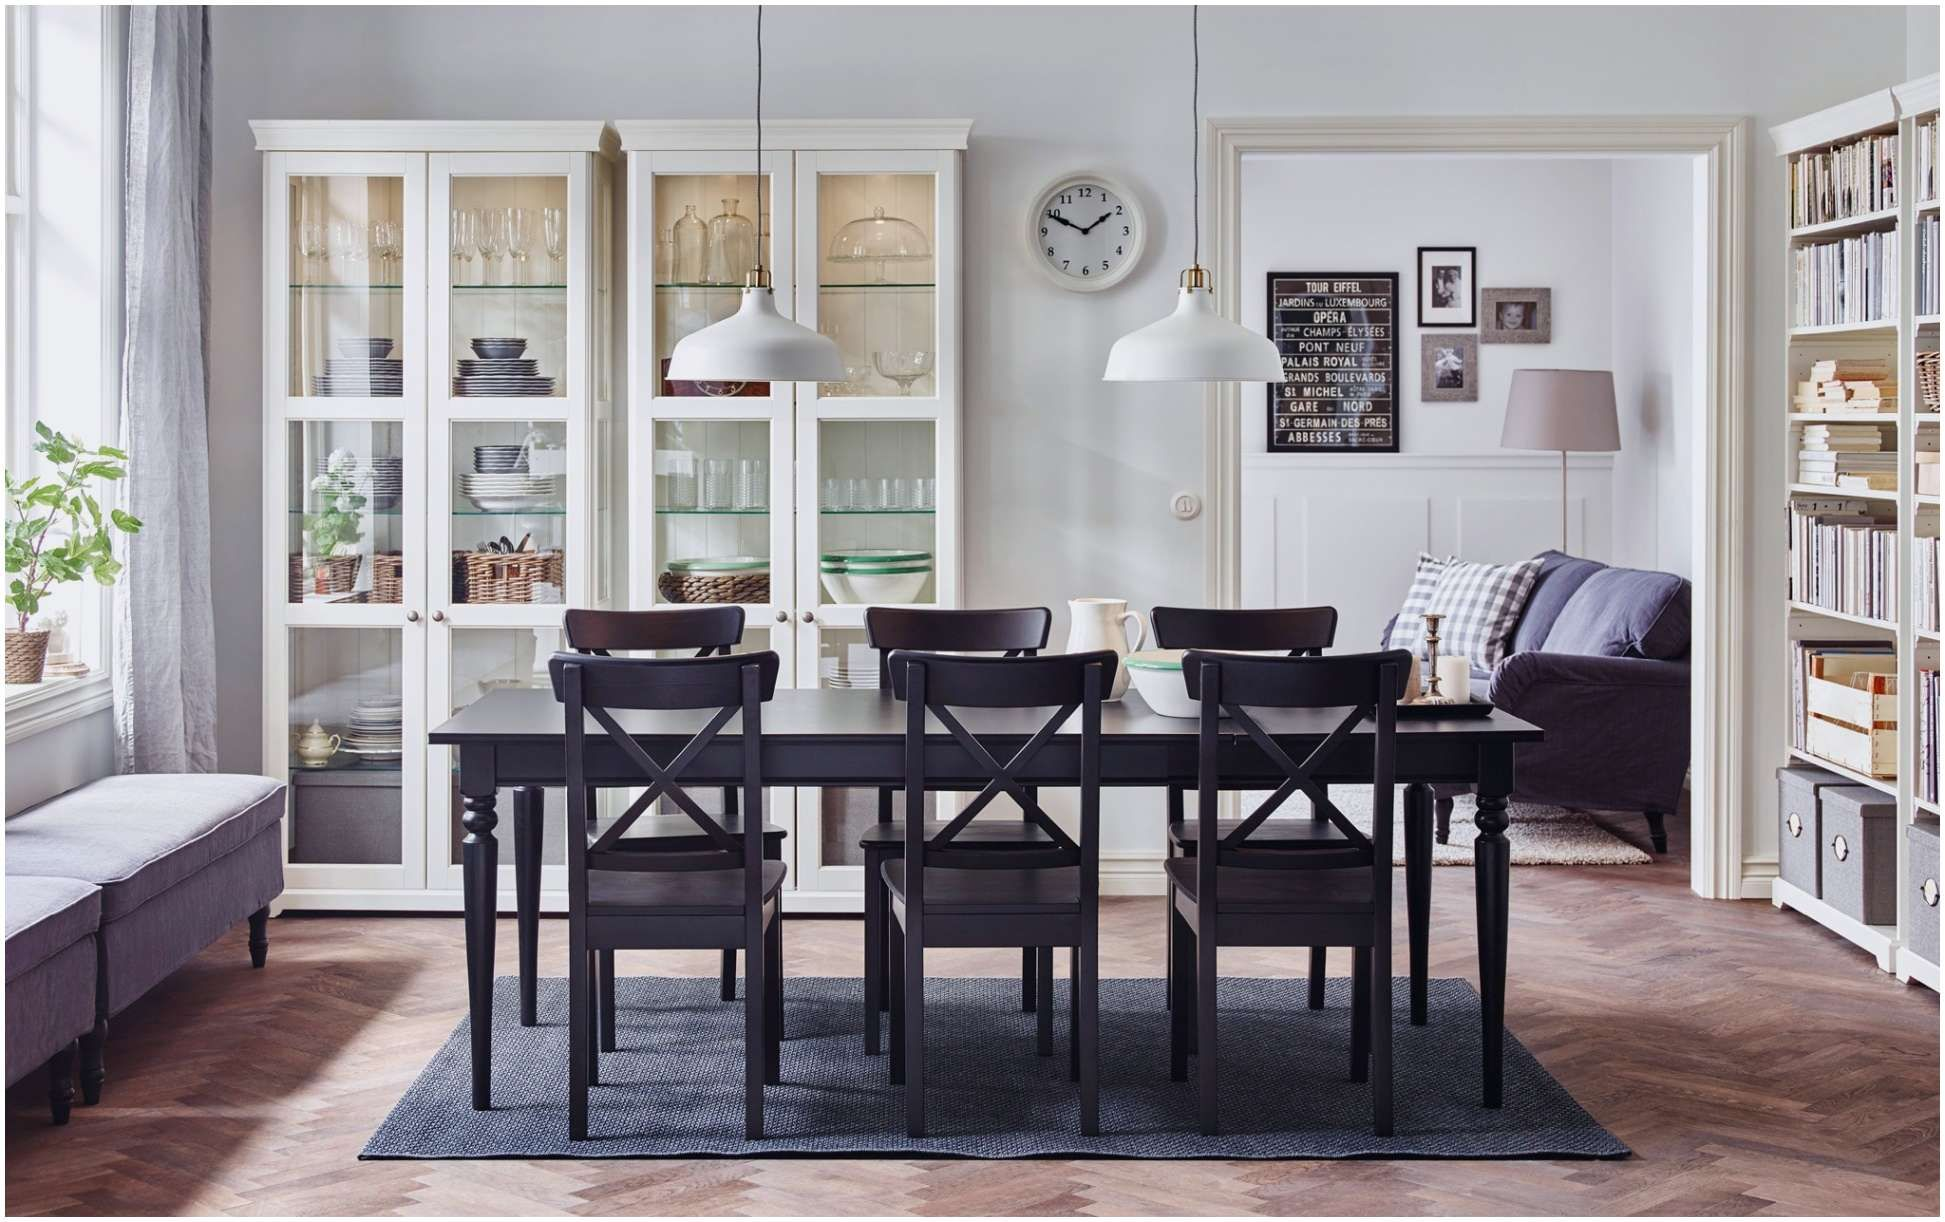 Banc Salle A Manger Banc Salle A Manger Salle A Manger Salle A Manger Nos Tables Chaises Miroirs Et Ikea Dining Room Ikea Dining Dining Table In Living Room